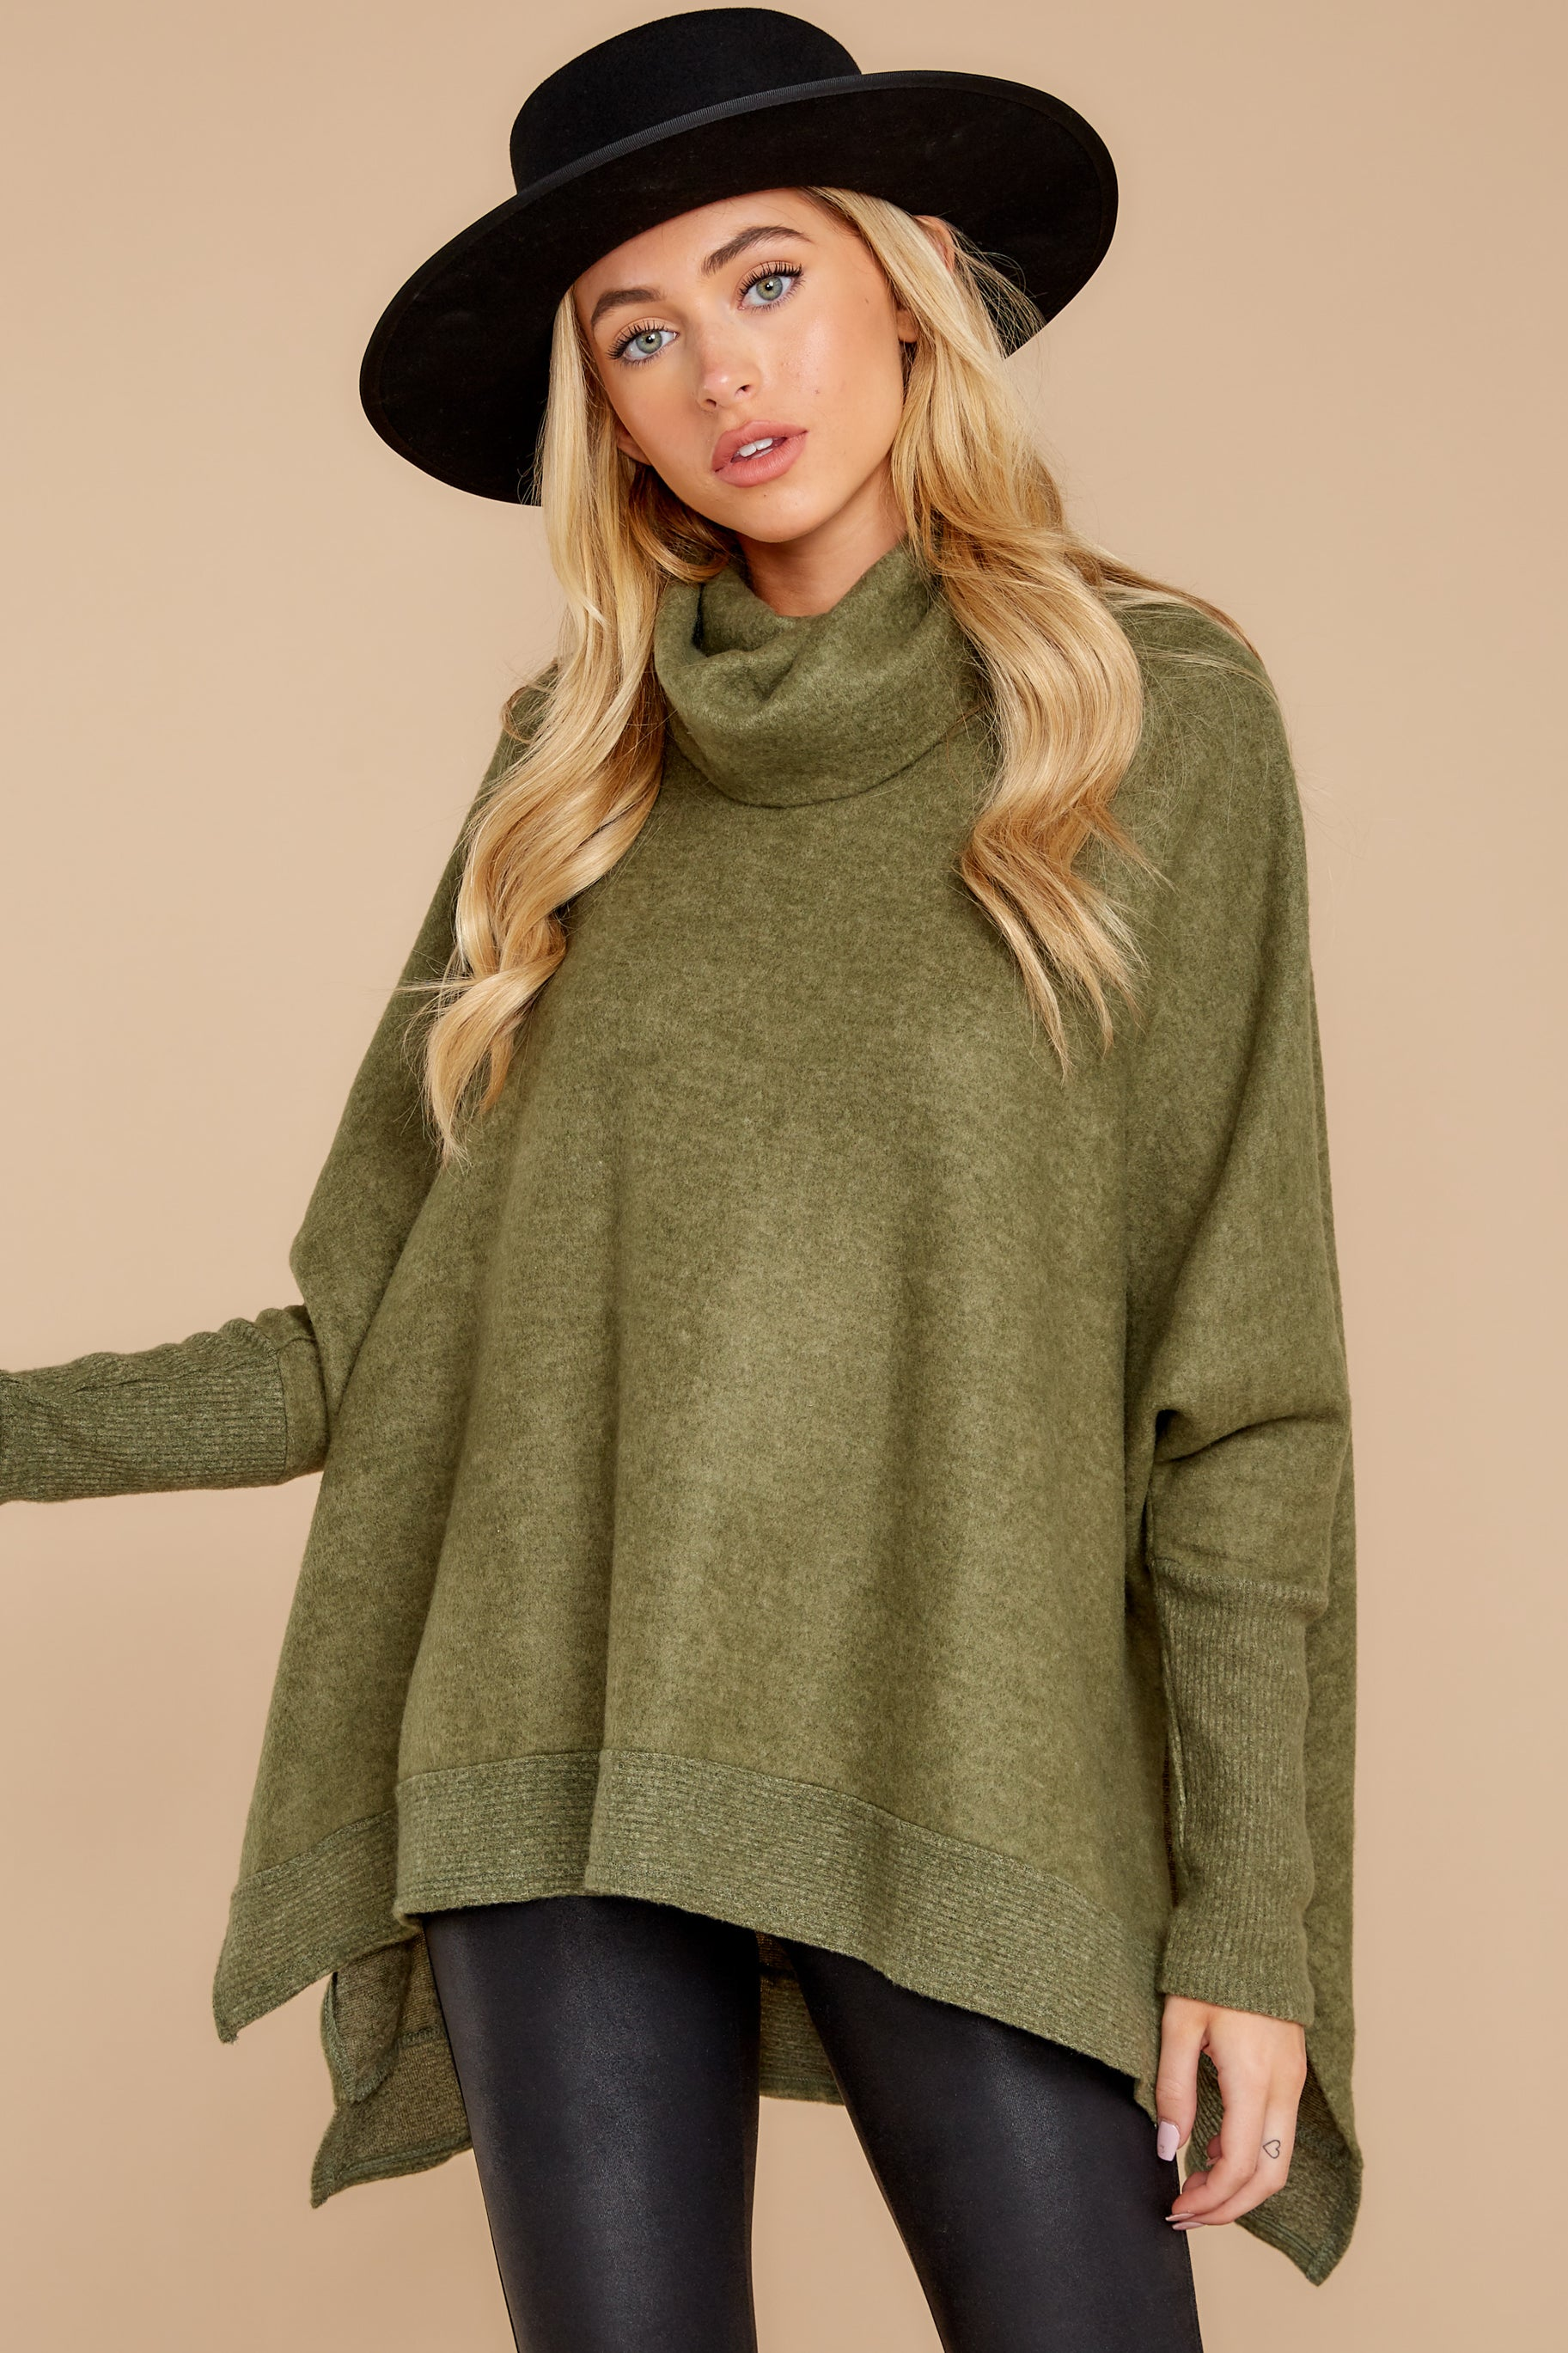 5 Last To Love Heather Green Cowl Neck Sweater at reddressboutique.com